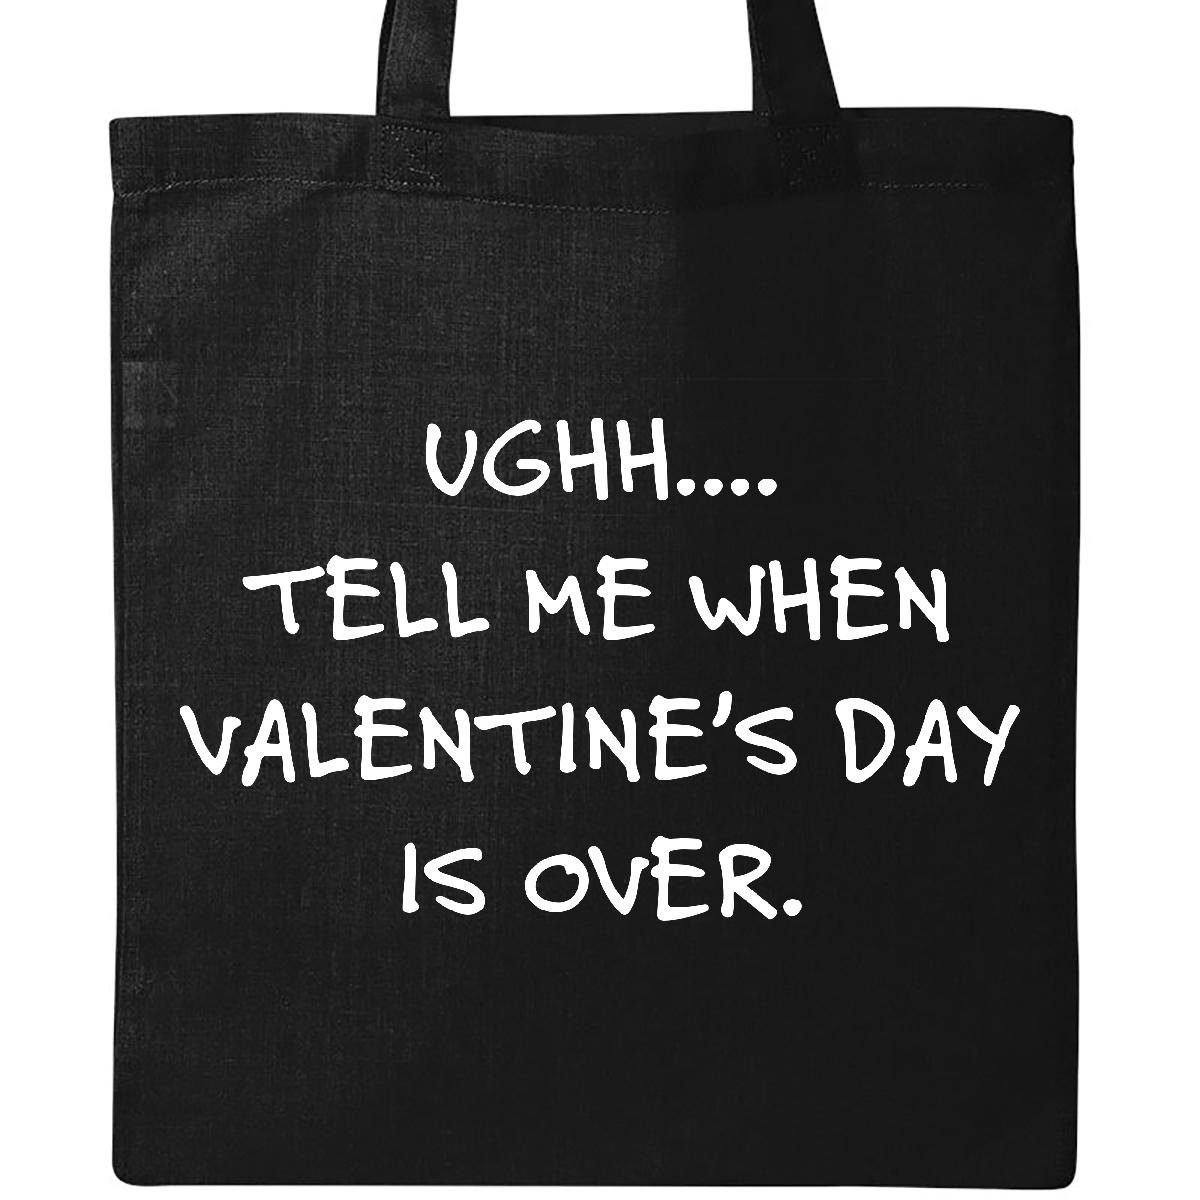 Tell Me When Valentine's Day is over Tote Bag